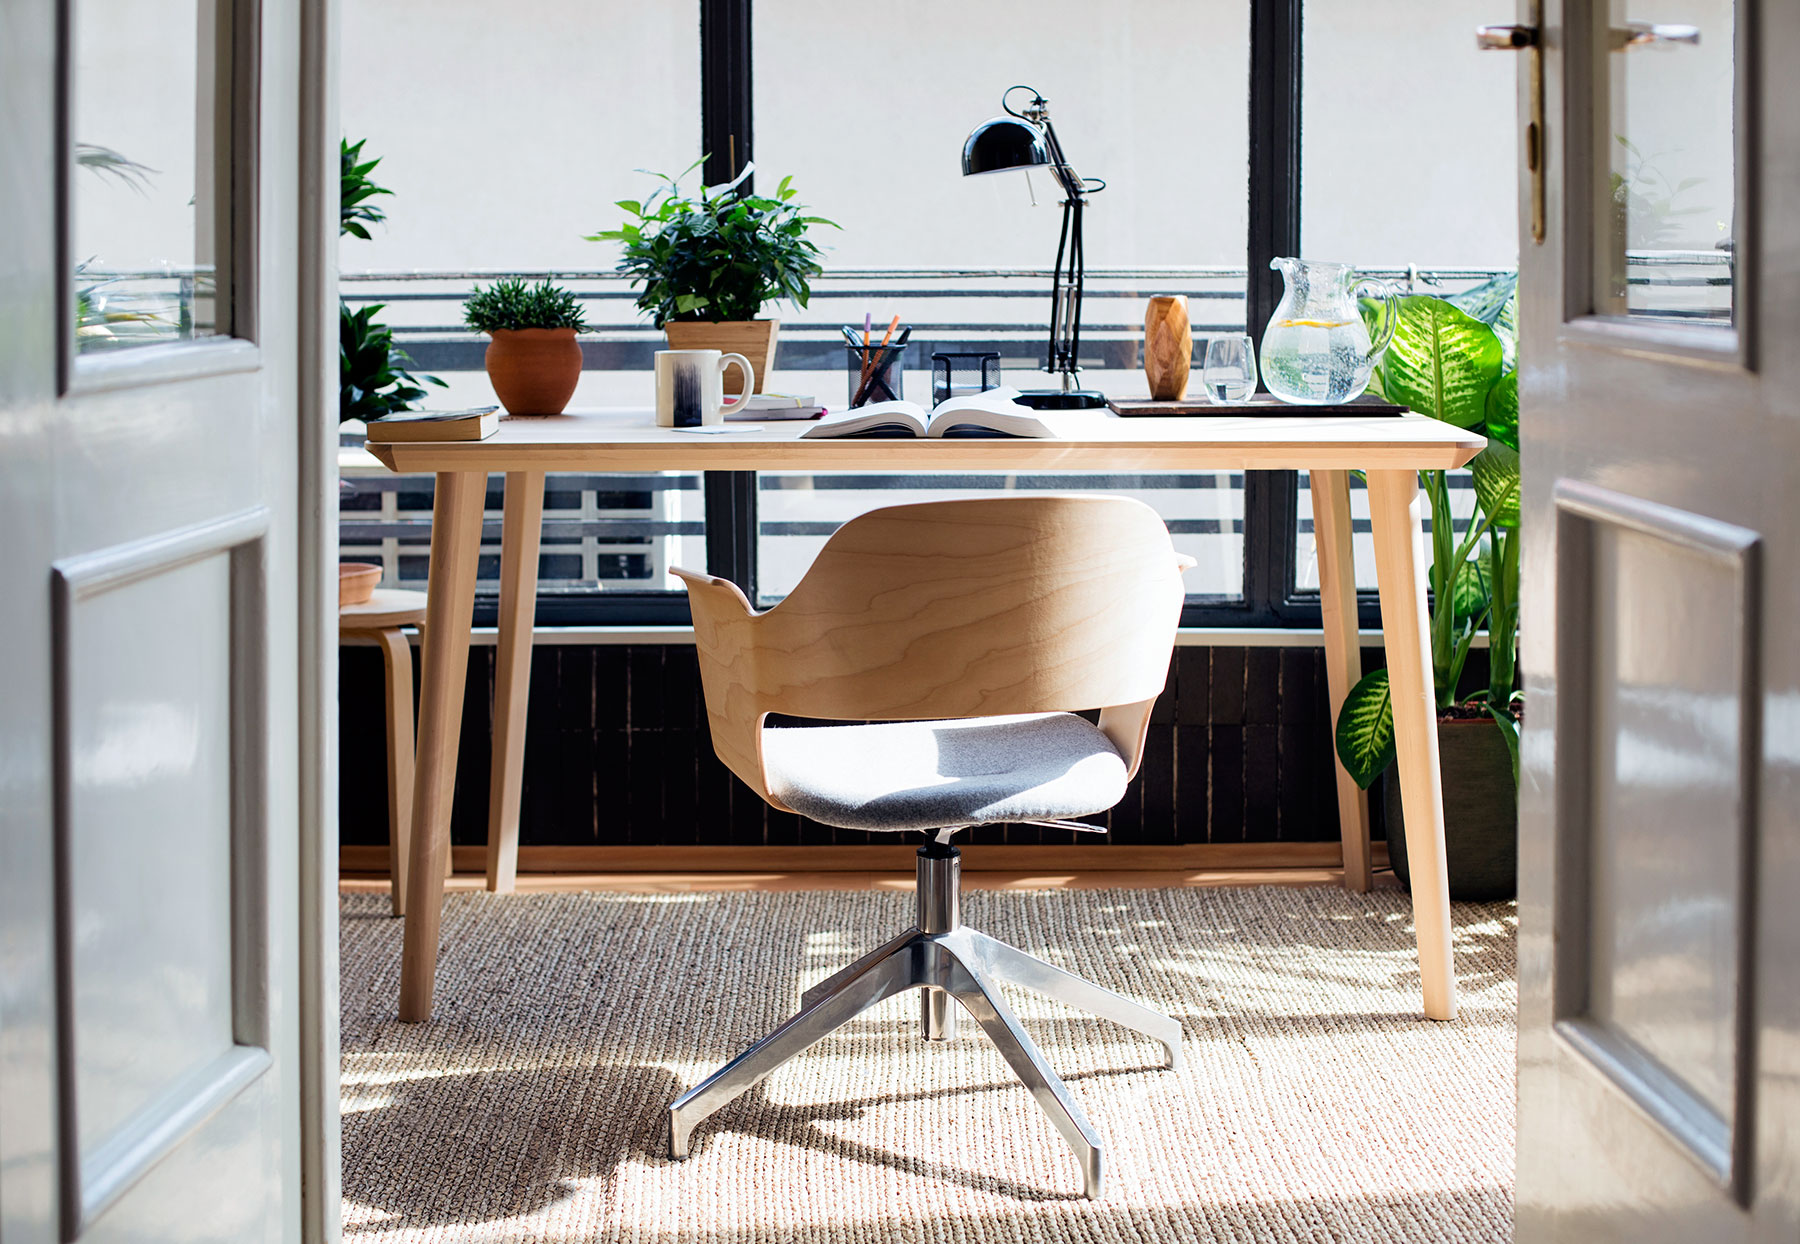 18 Home Office Ideas That Will Make You Want to Work All Day